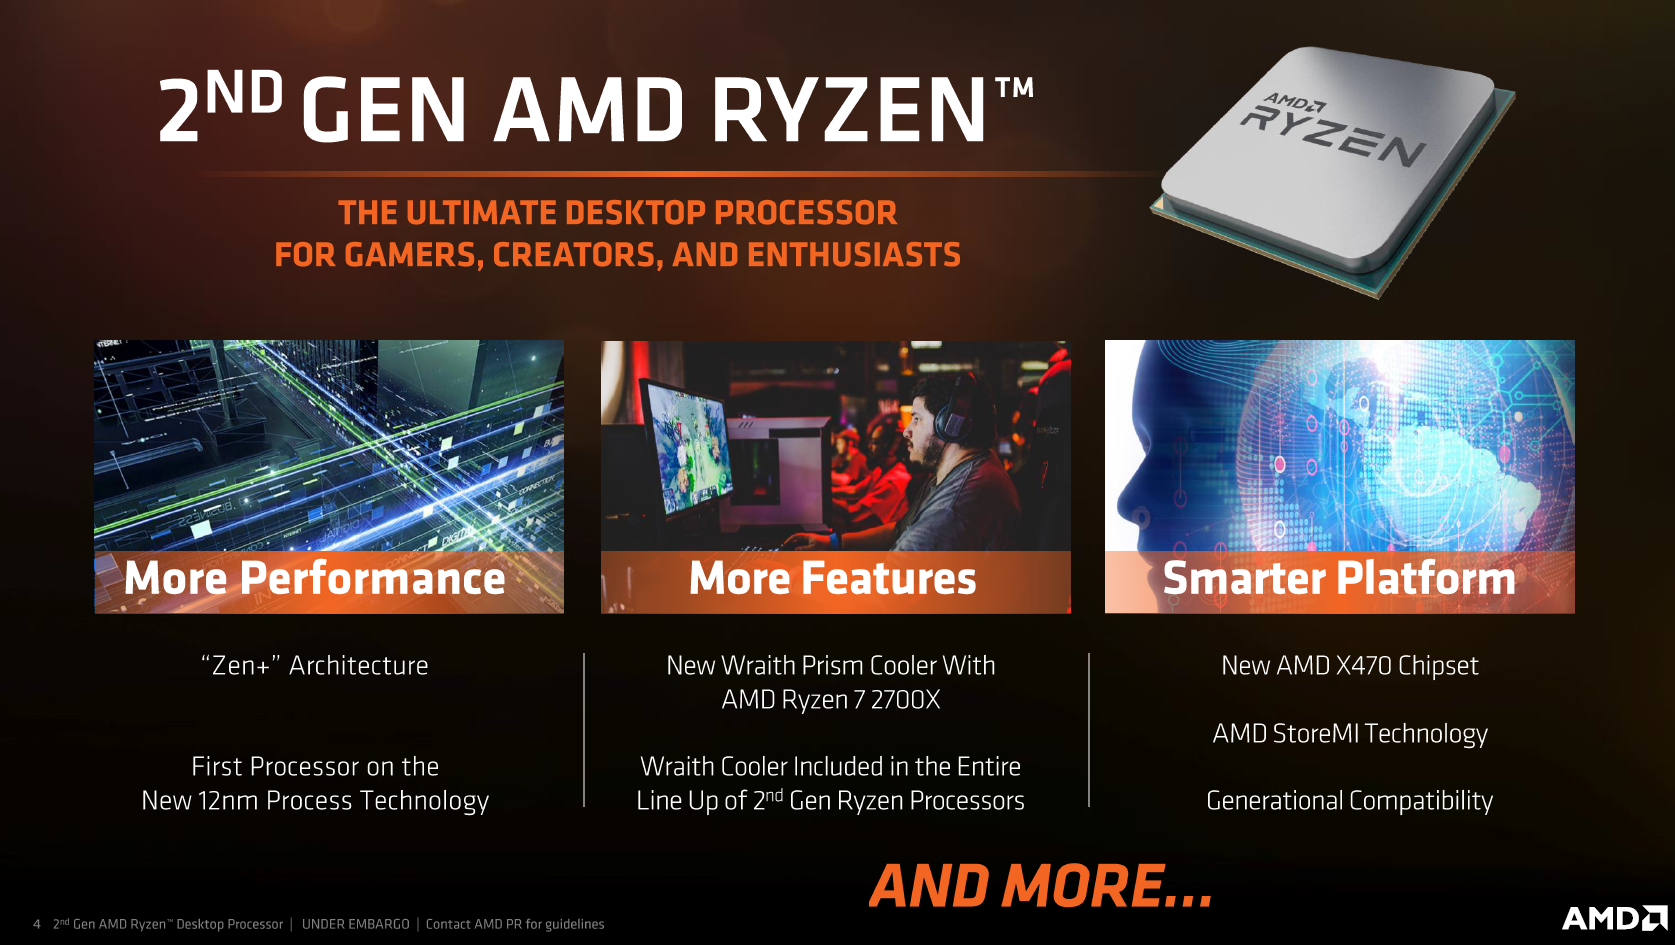 AMD Ryzen 7 2700X and Ryzen 5 2600X Overclocked to 5 88 GHz